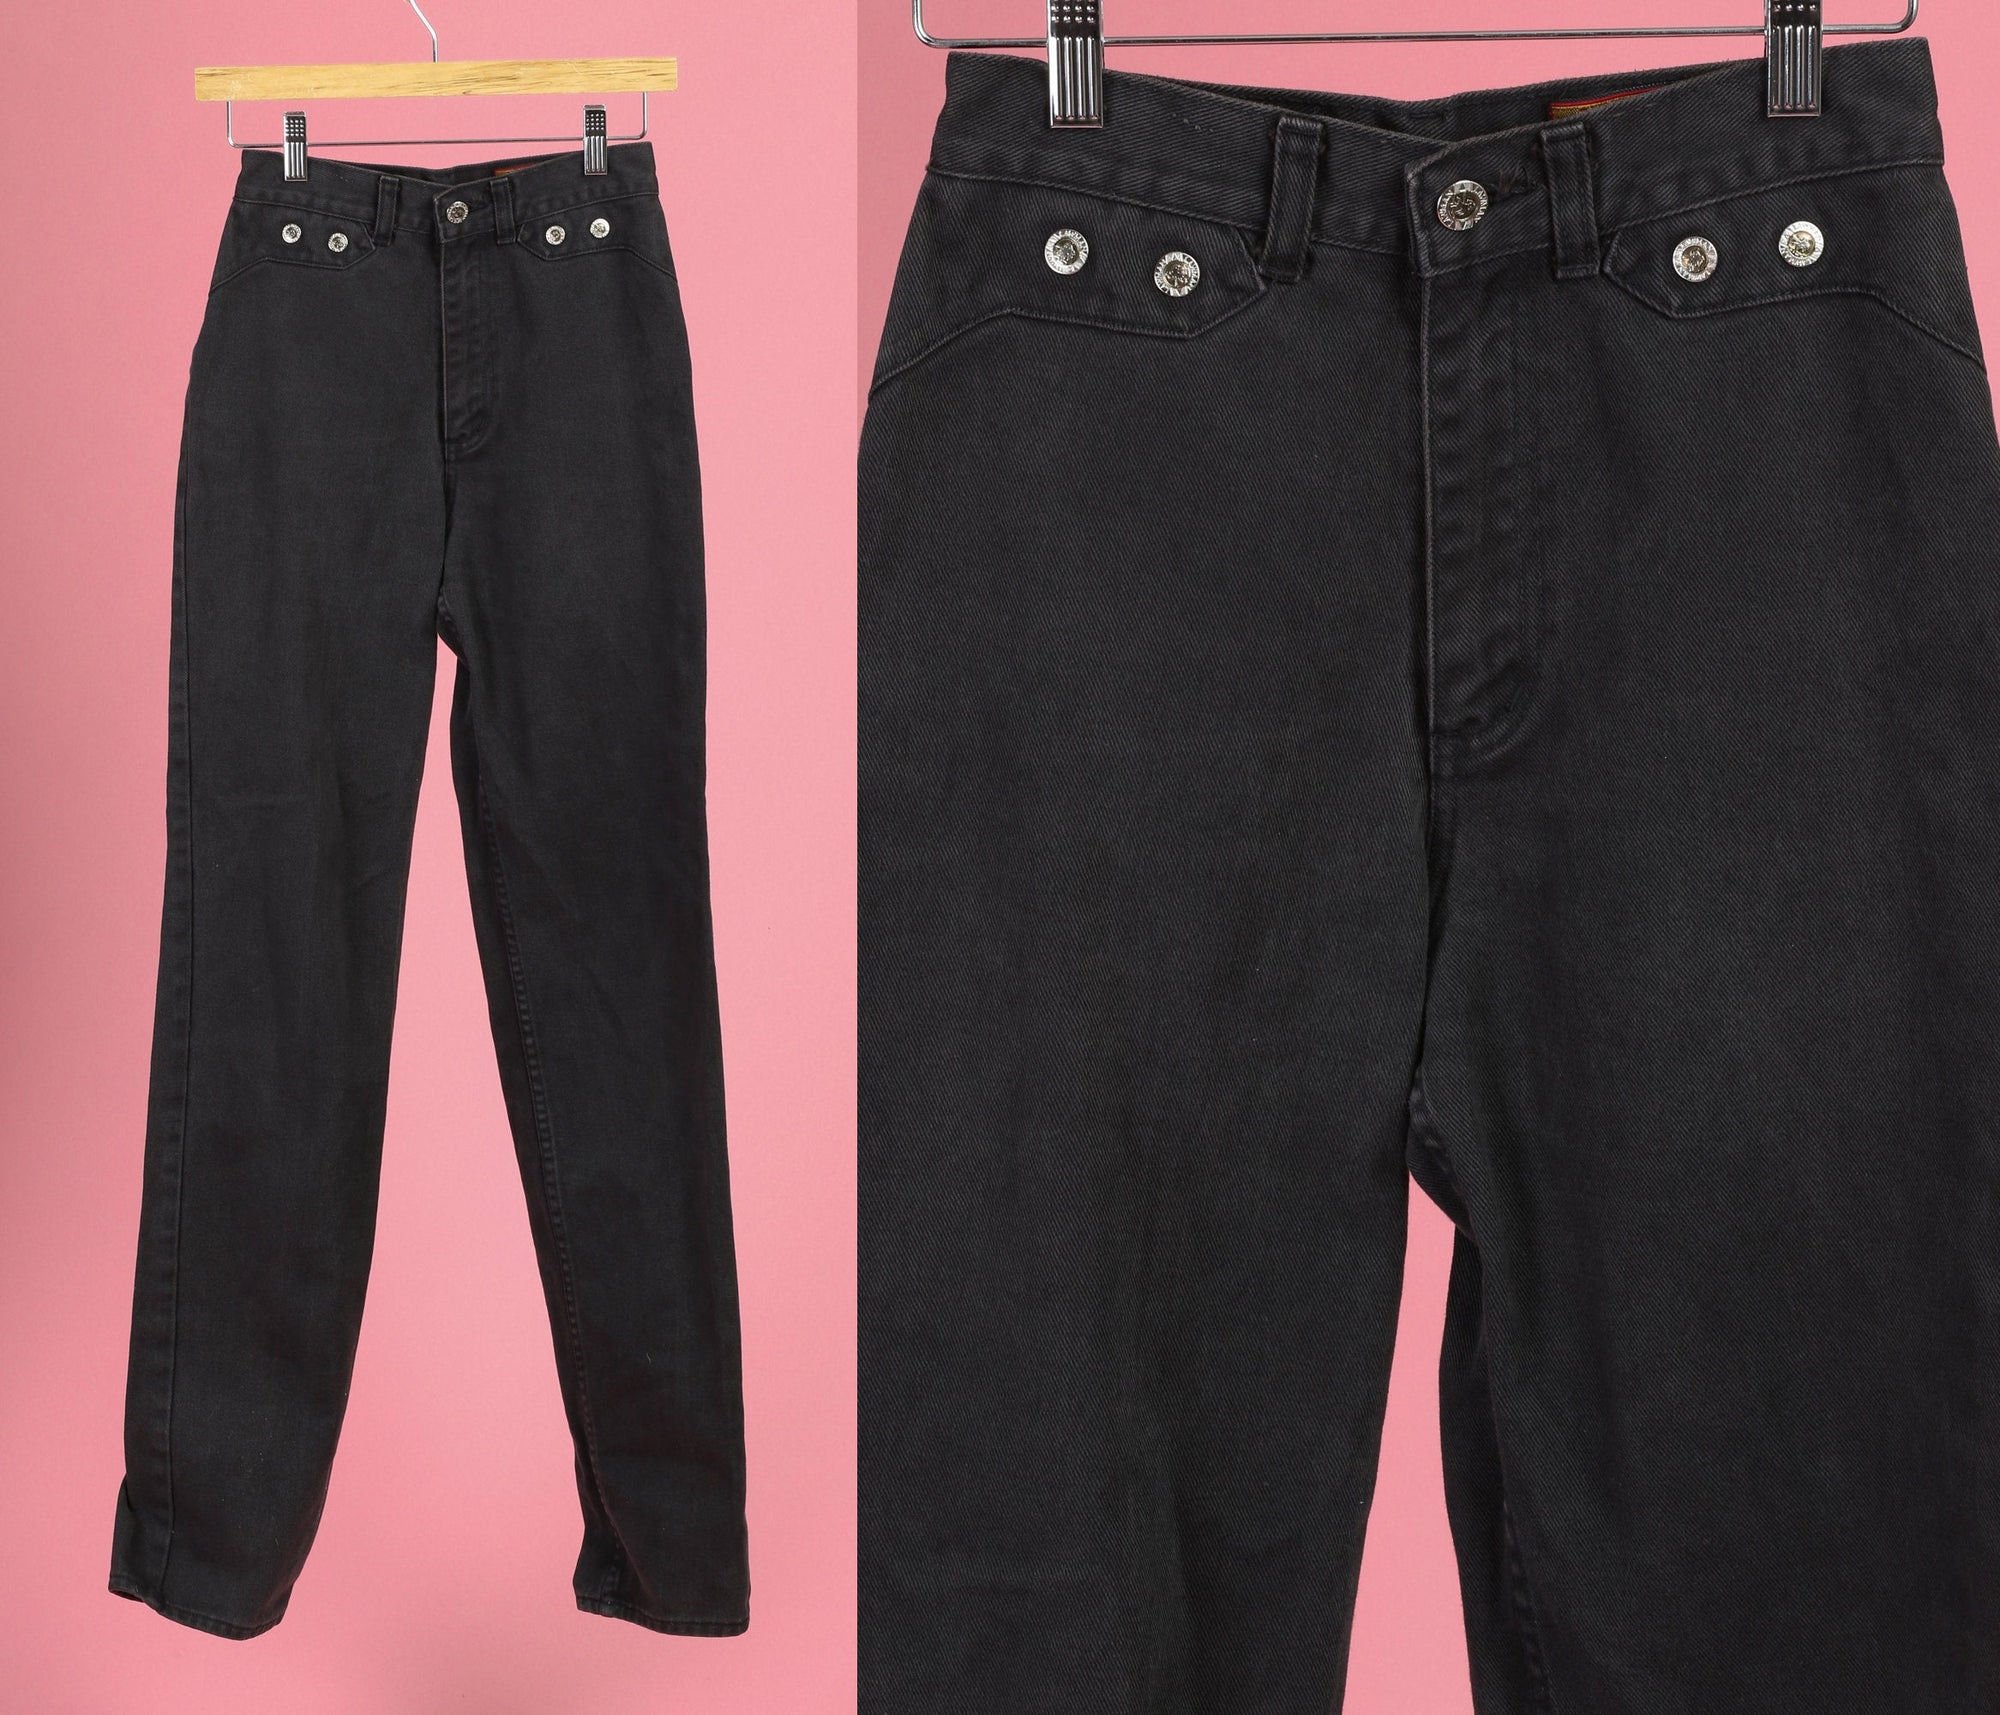 80s Black Denim High Waist Western Jeans - Extra Small